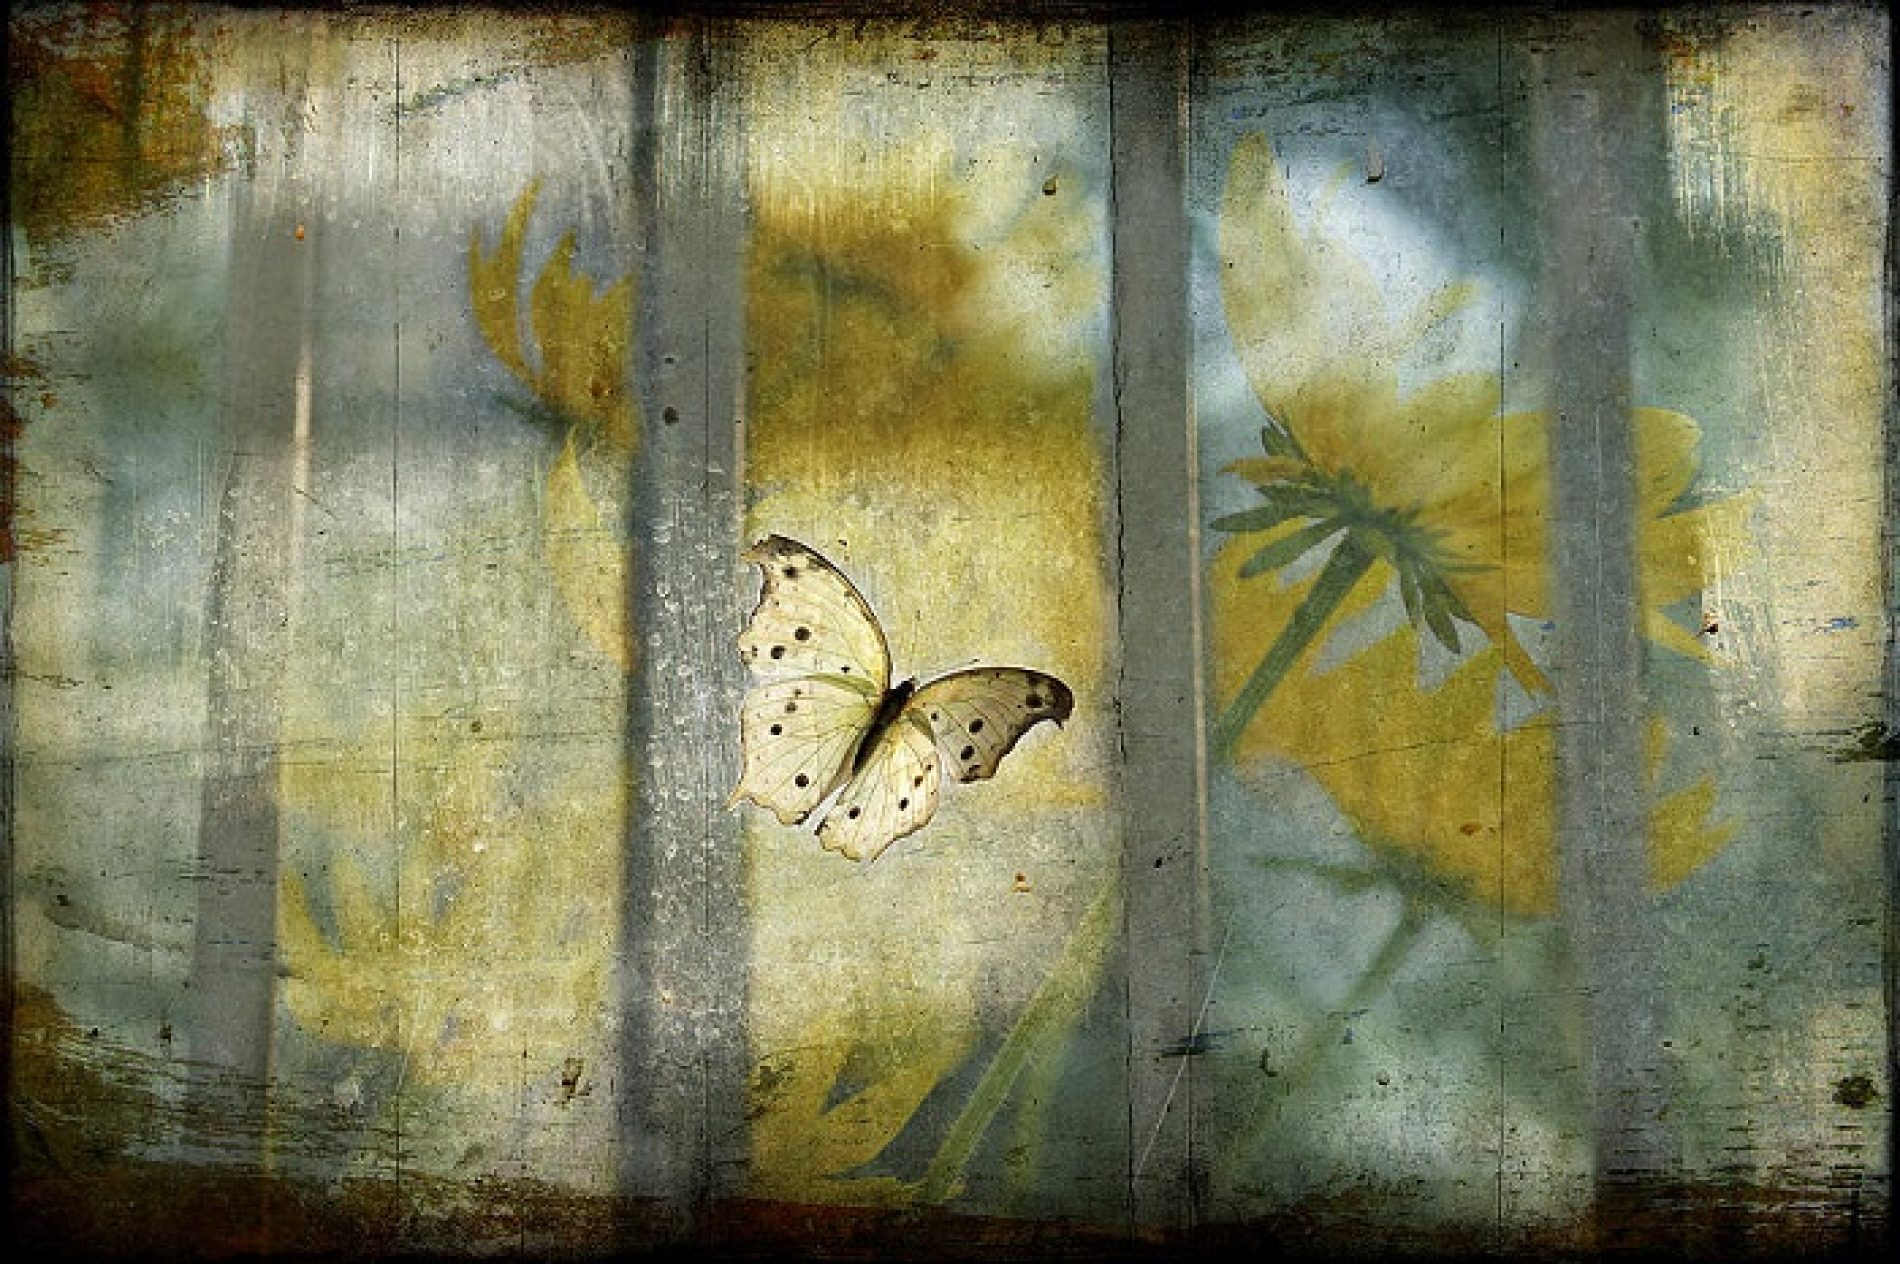 The Trapped Butterfly